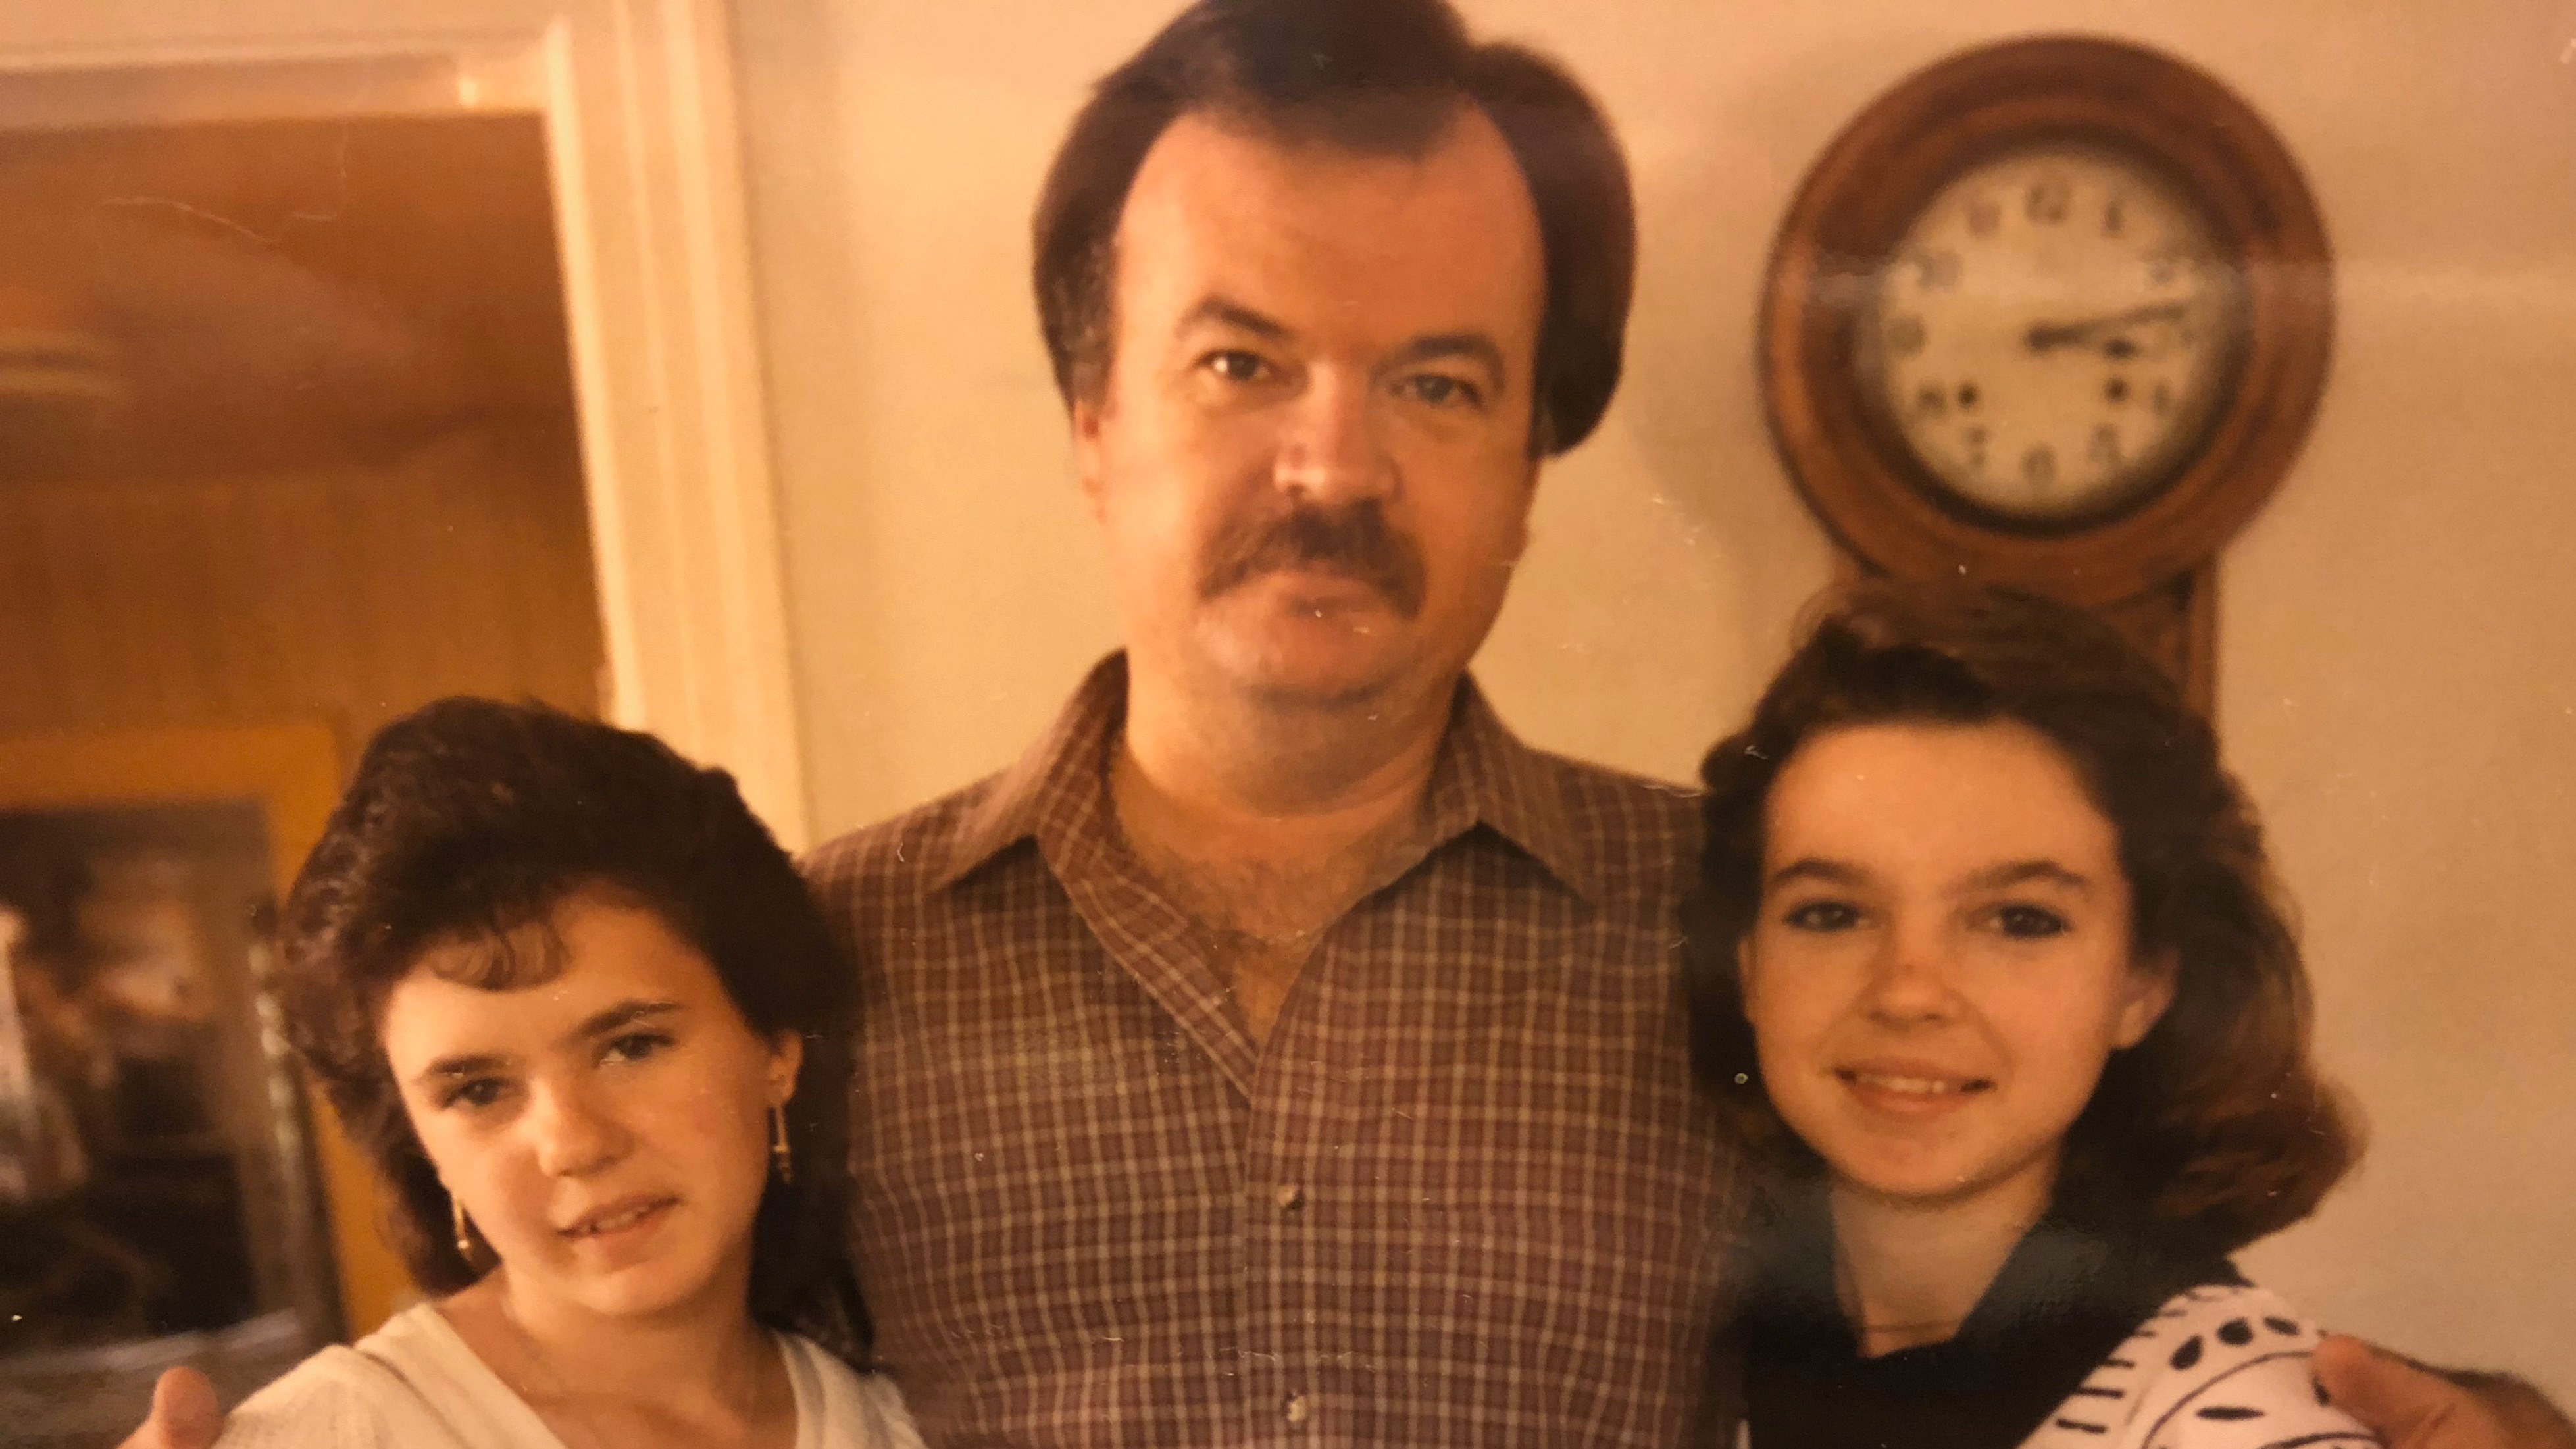 My Firefighter Father John Orr Got Sexual Thrills from His Murderous Arson